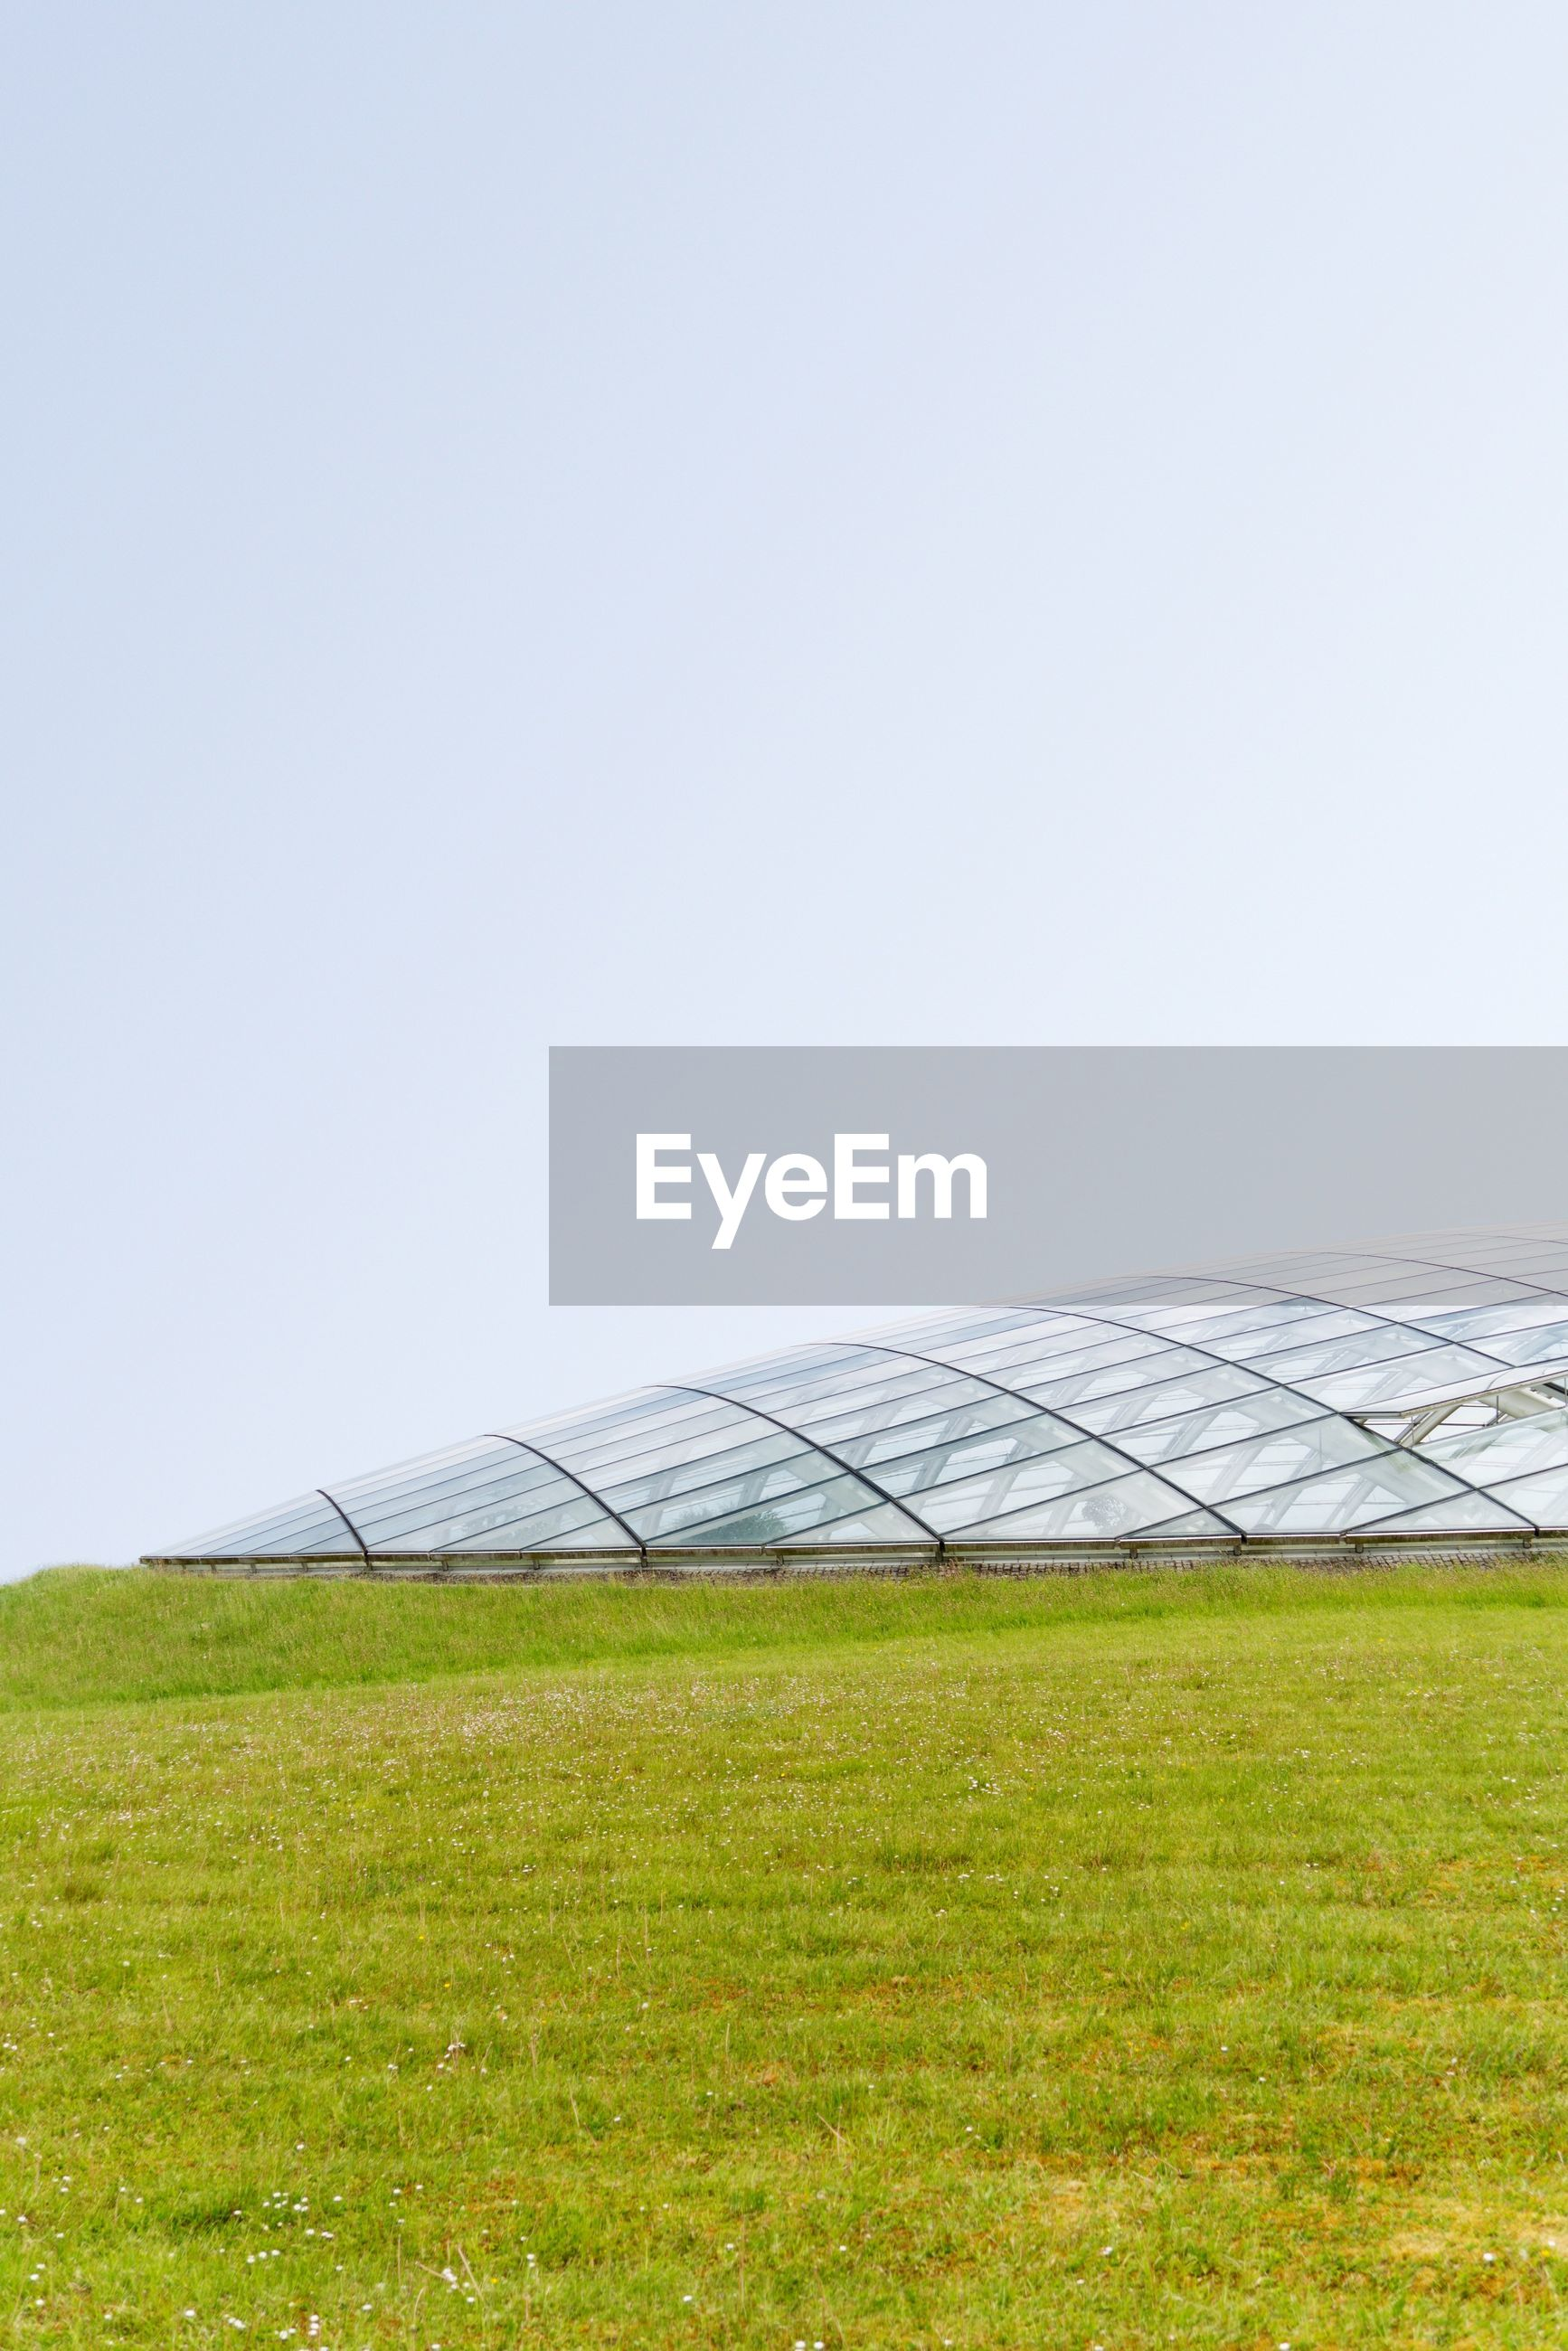 grass, copy space, sky, environment, plant, field, clear sky, nature, land, day, landscape, green color, no people, renewable energy, growth, solar energy, environmental conservation, solar panel, alternative energy, outdoors, sustainable resources